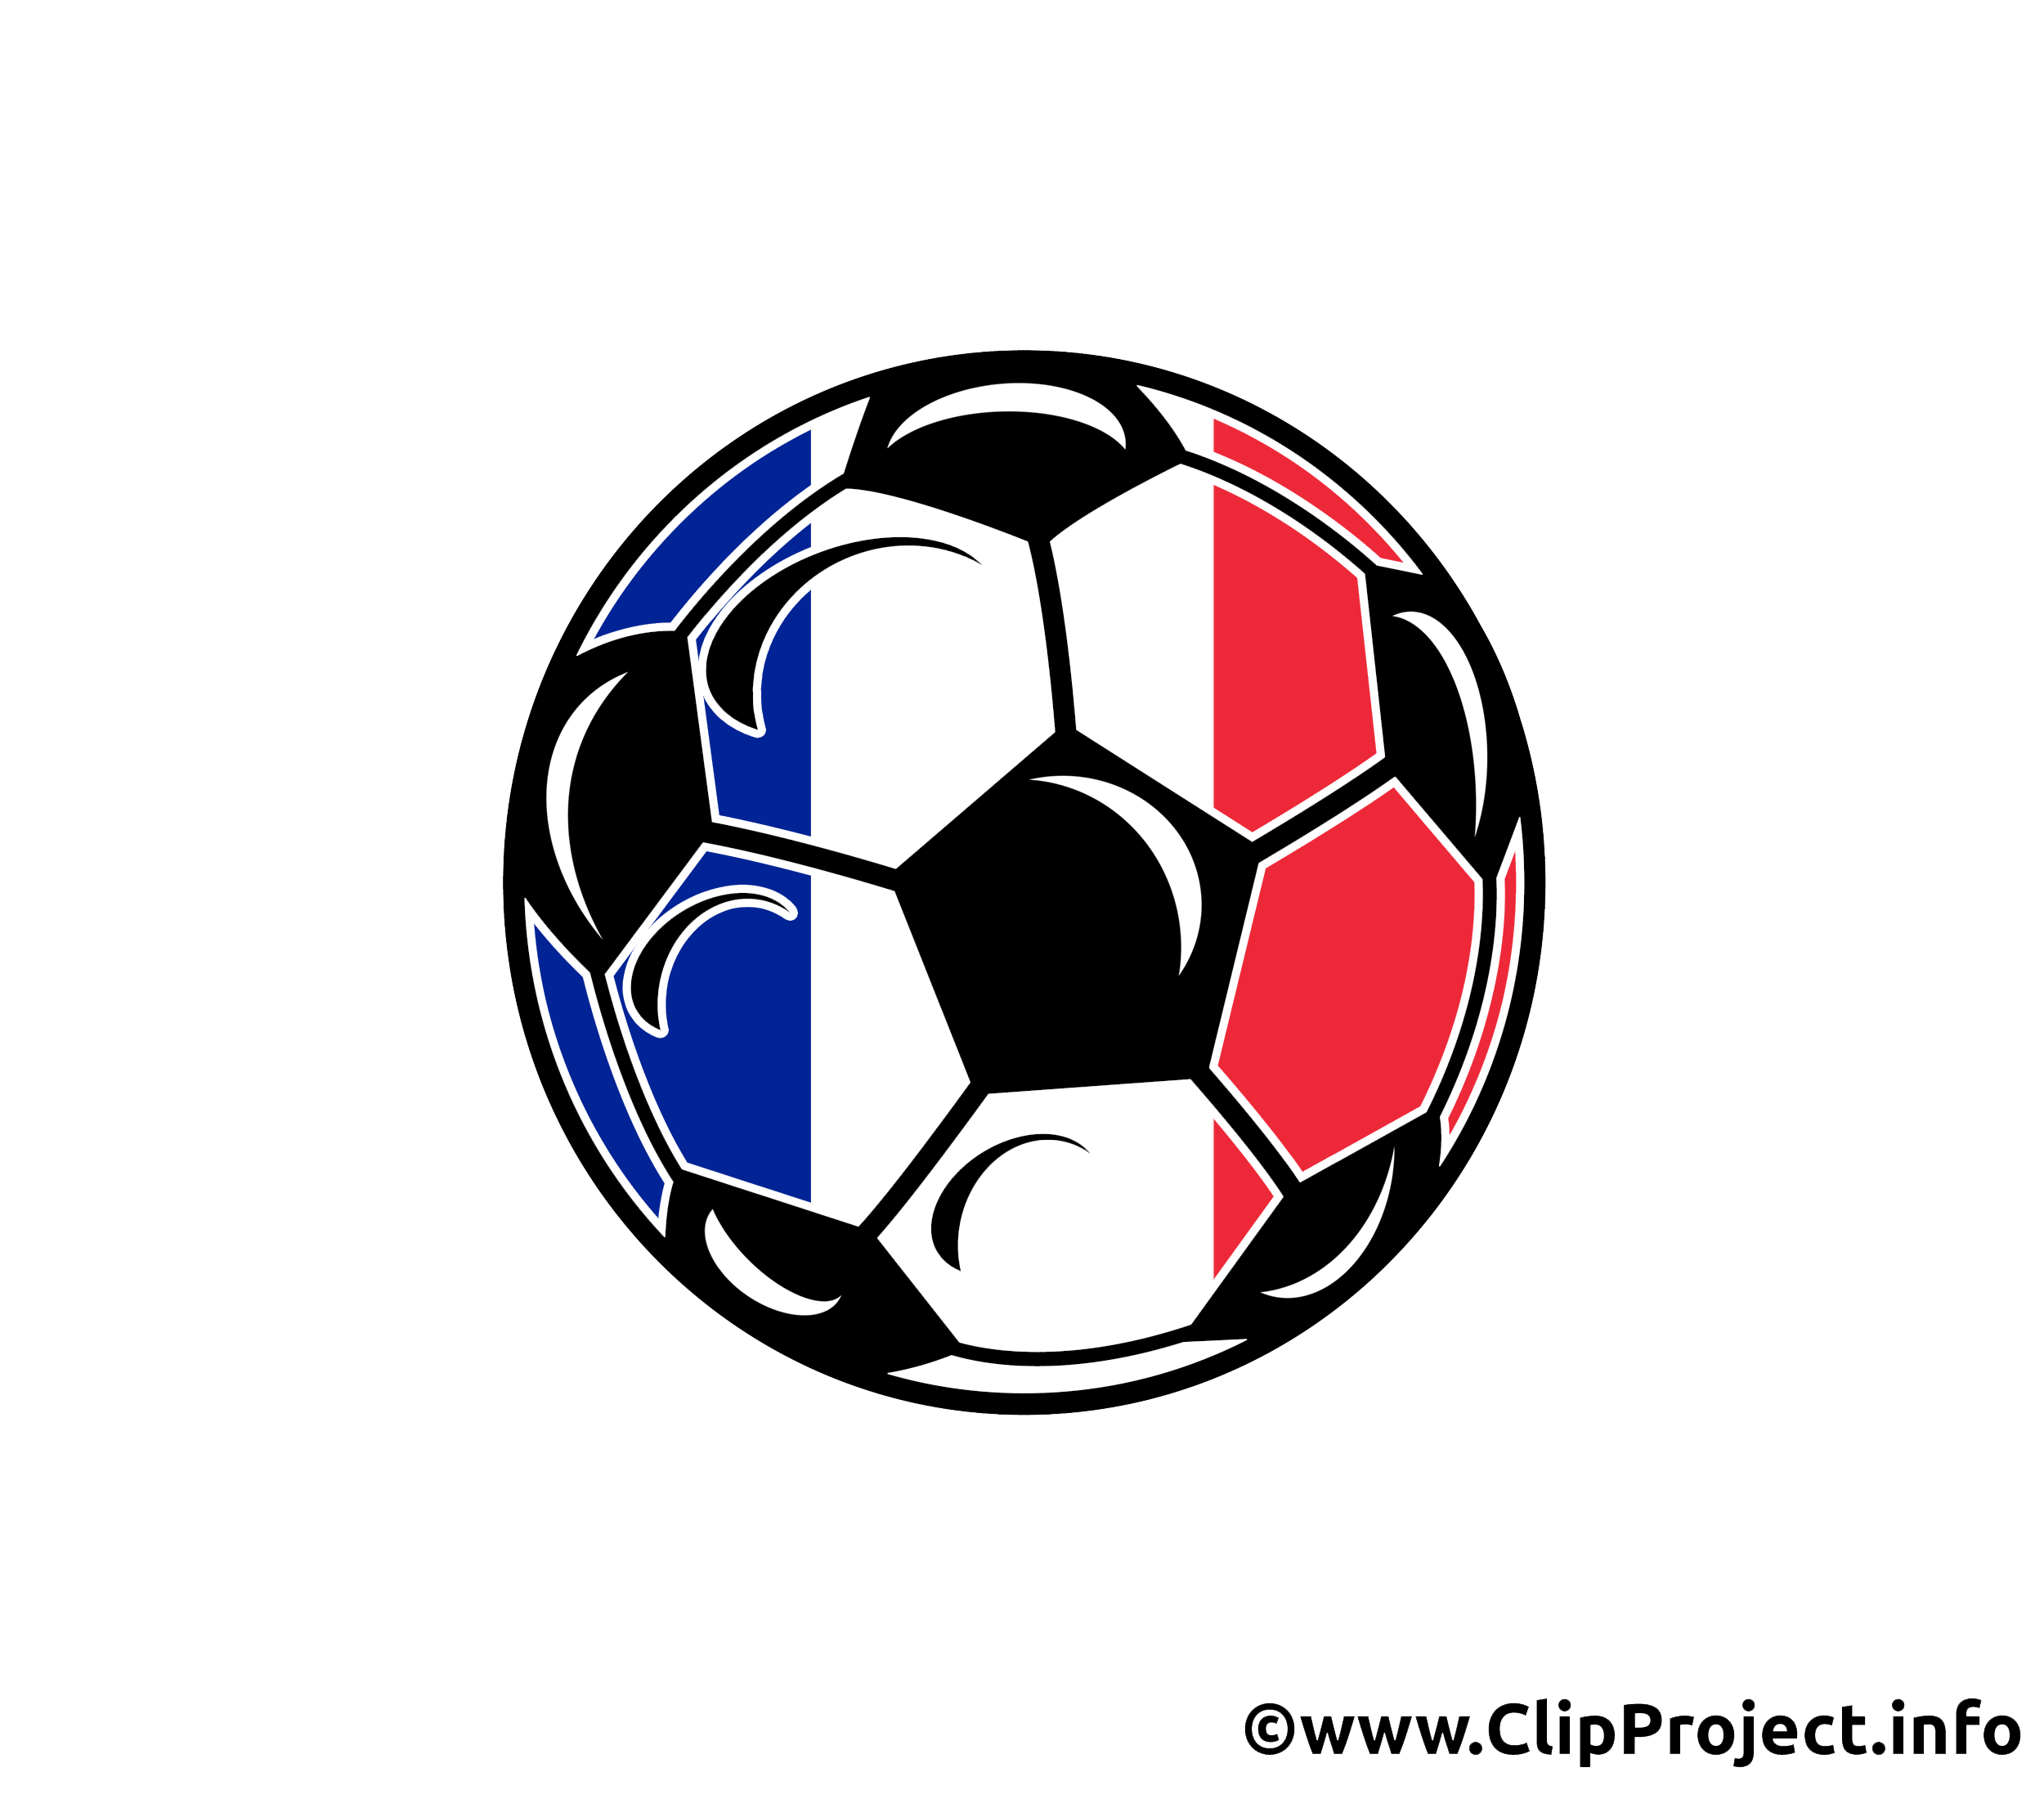 ballon de foot avec des couleurs drapeau fran ais football dessin picture image graphic. Black Bedroom Furniture Sets. Home Design Ideas